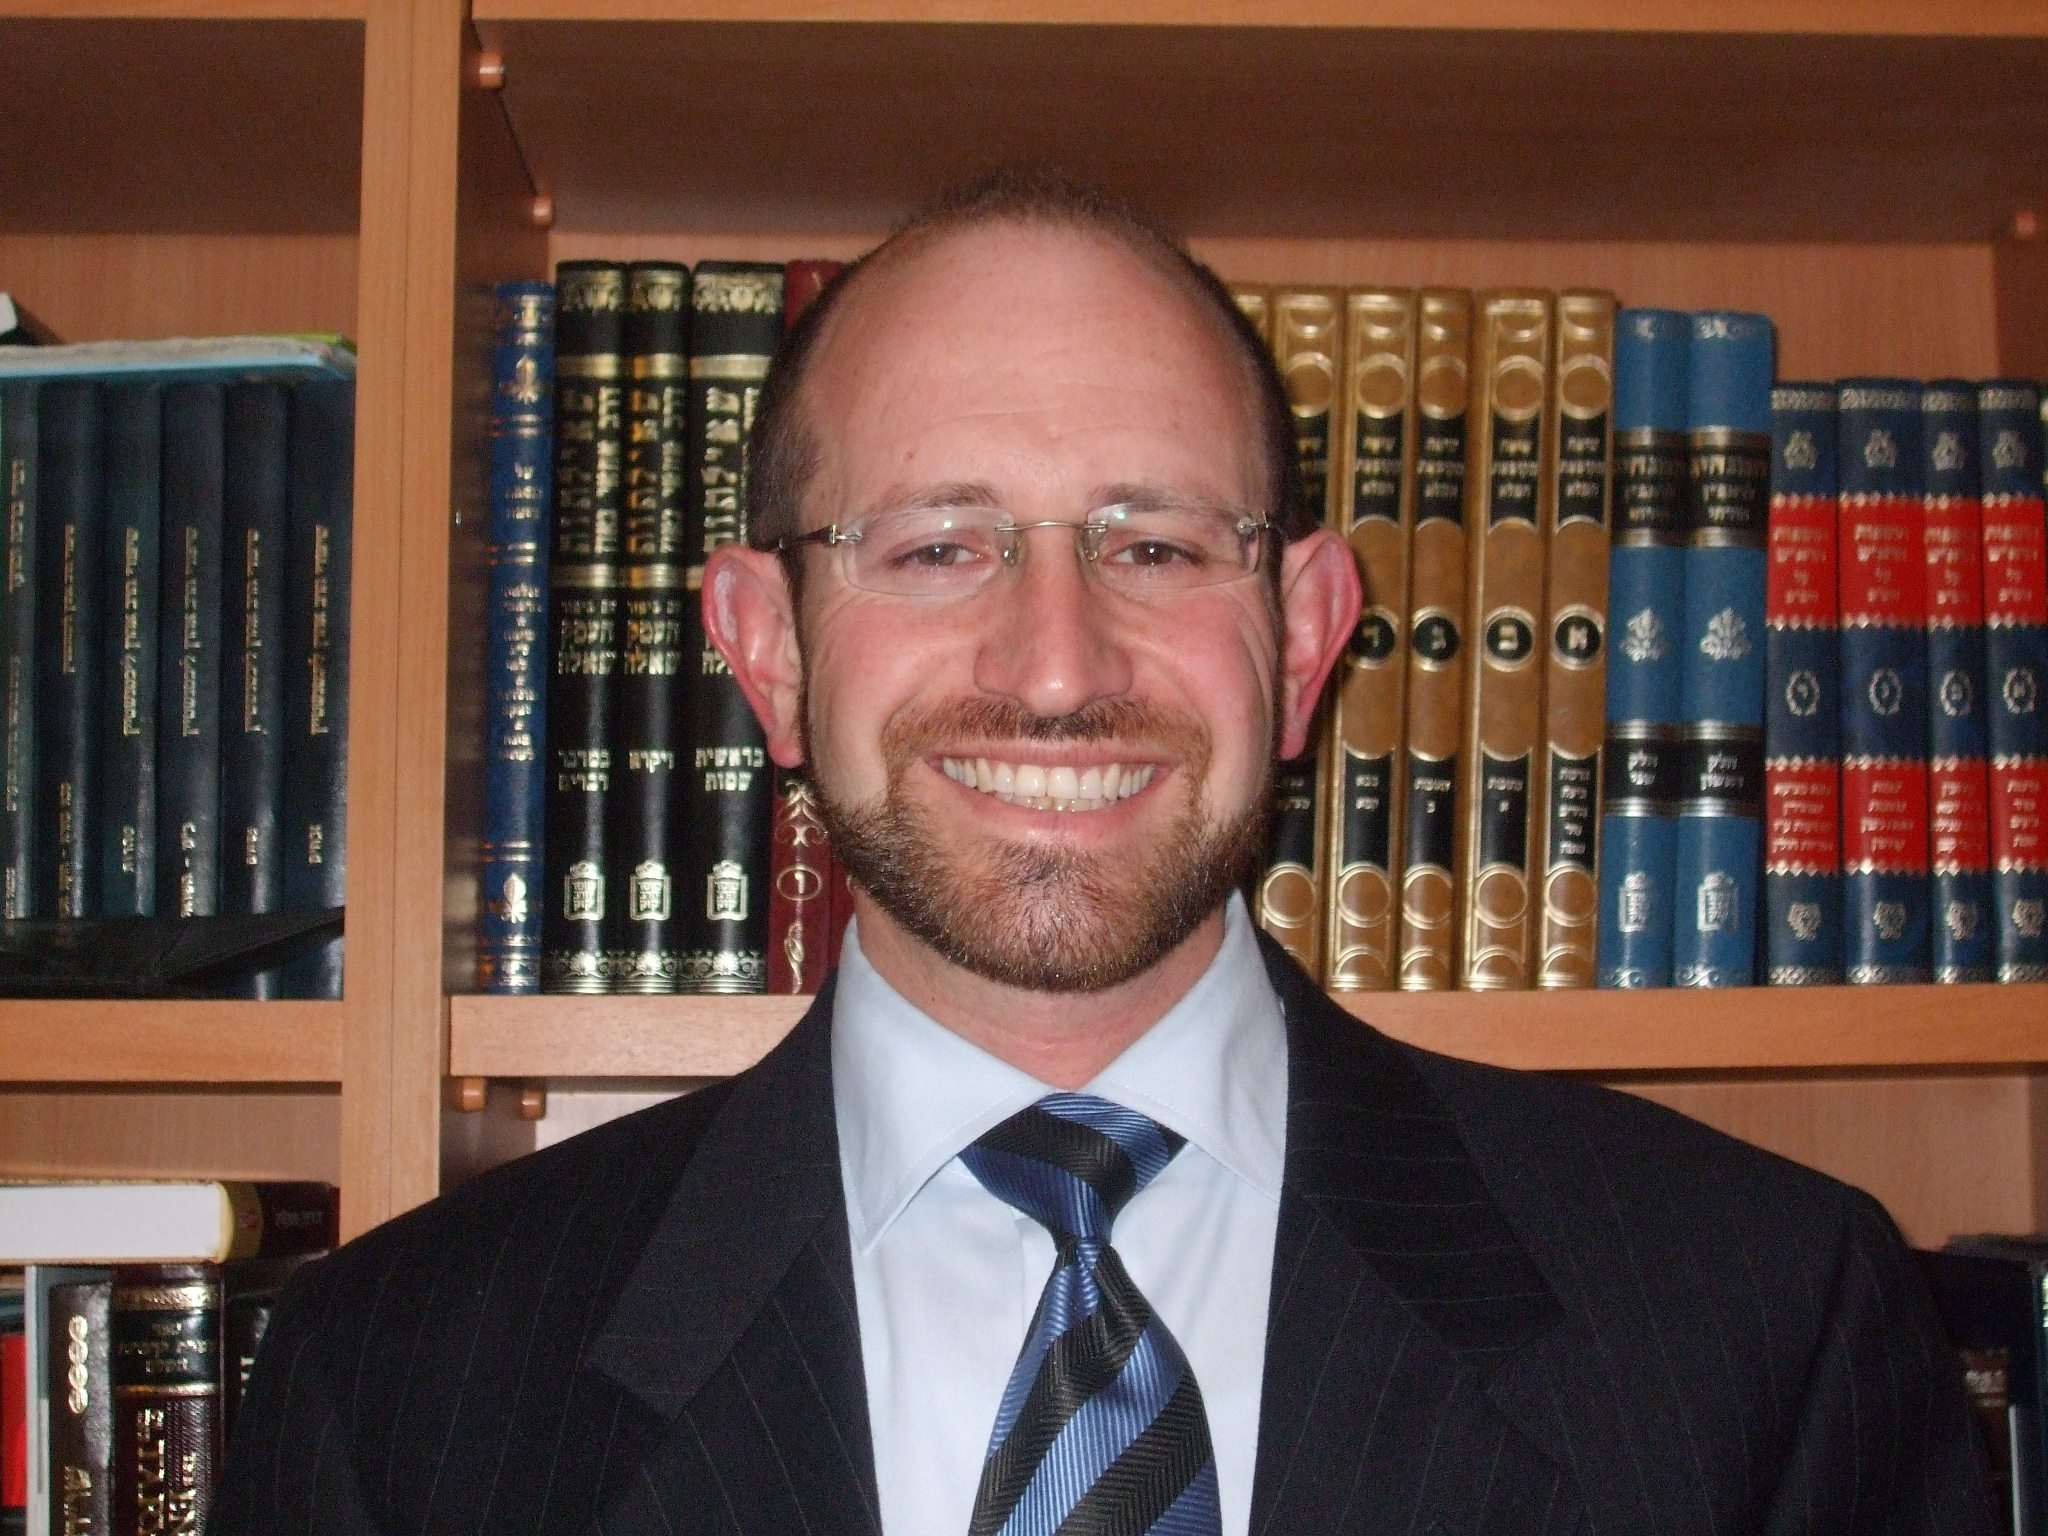 Rabbi Grunstein